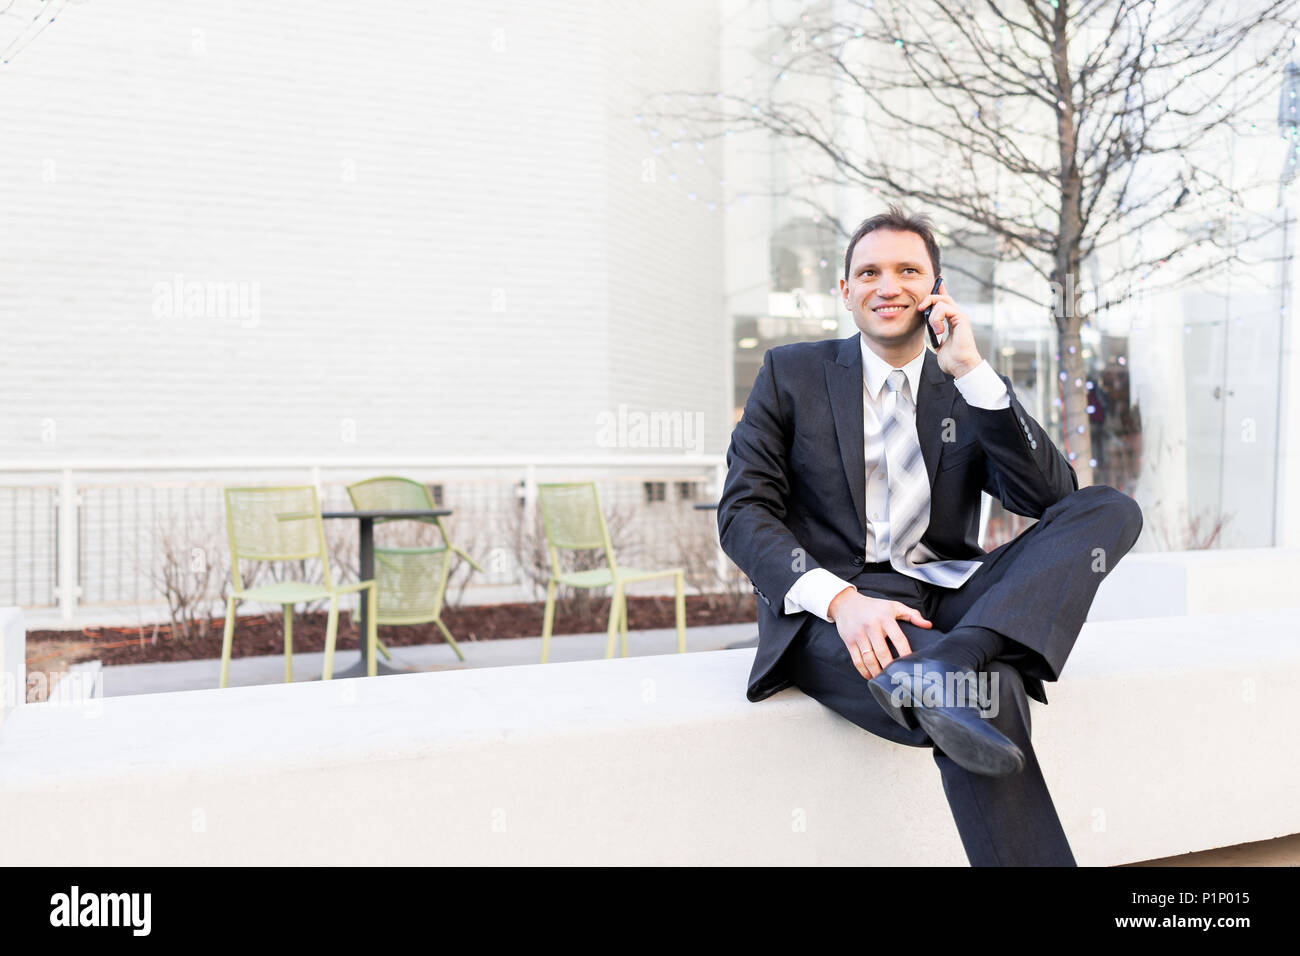 Handsome, attractive young businessman smiling sitting on bench in park, using talking holding smartphone phone mobile cellphone smiling in suit and t - Stock Image